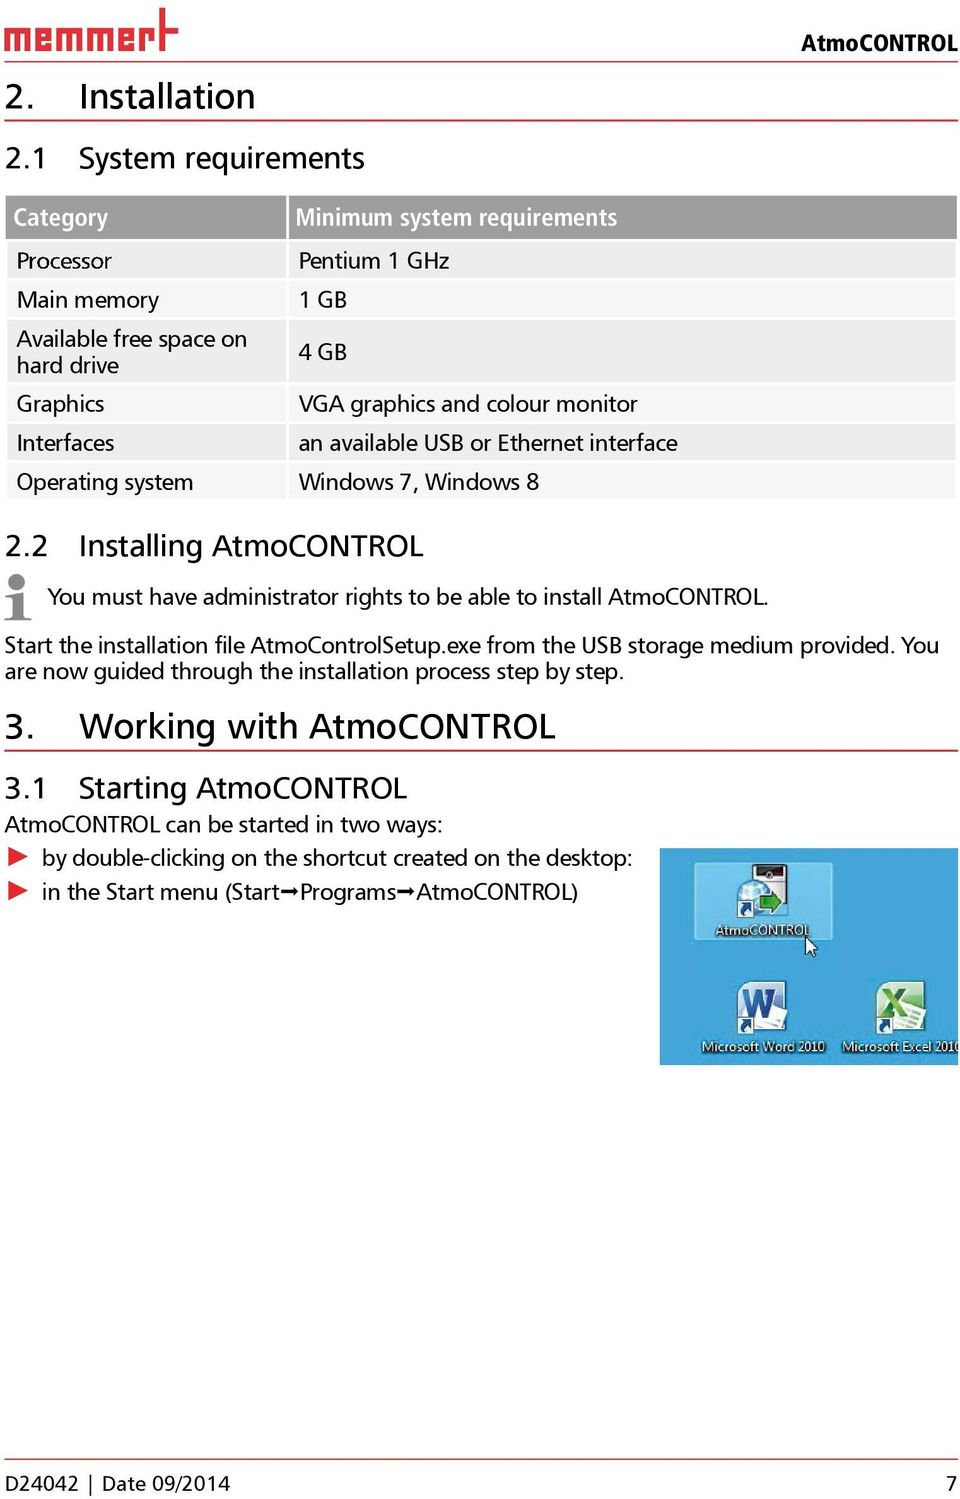 colour monitor an available USB or Ethernet interface Operating system Windows 7, Windows 8 2.2 Installing AtmoCONTROL You must have administrator rights to be able to install AtmoCONTROL.